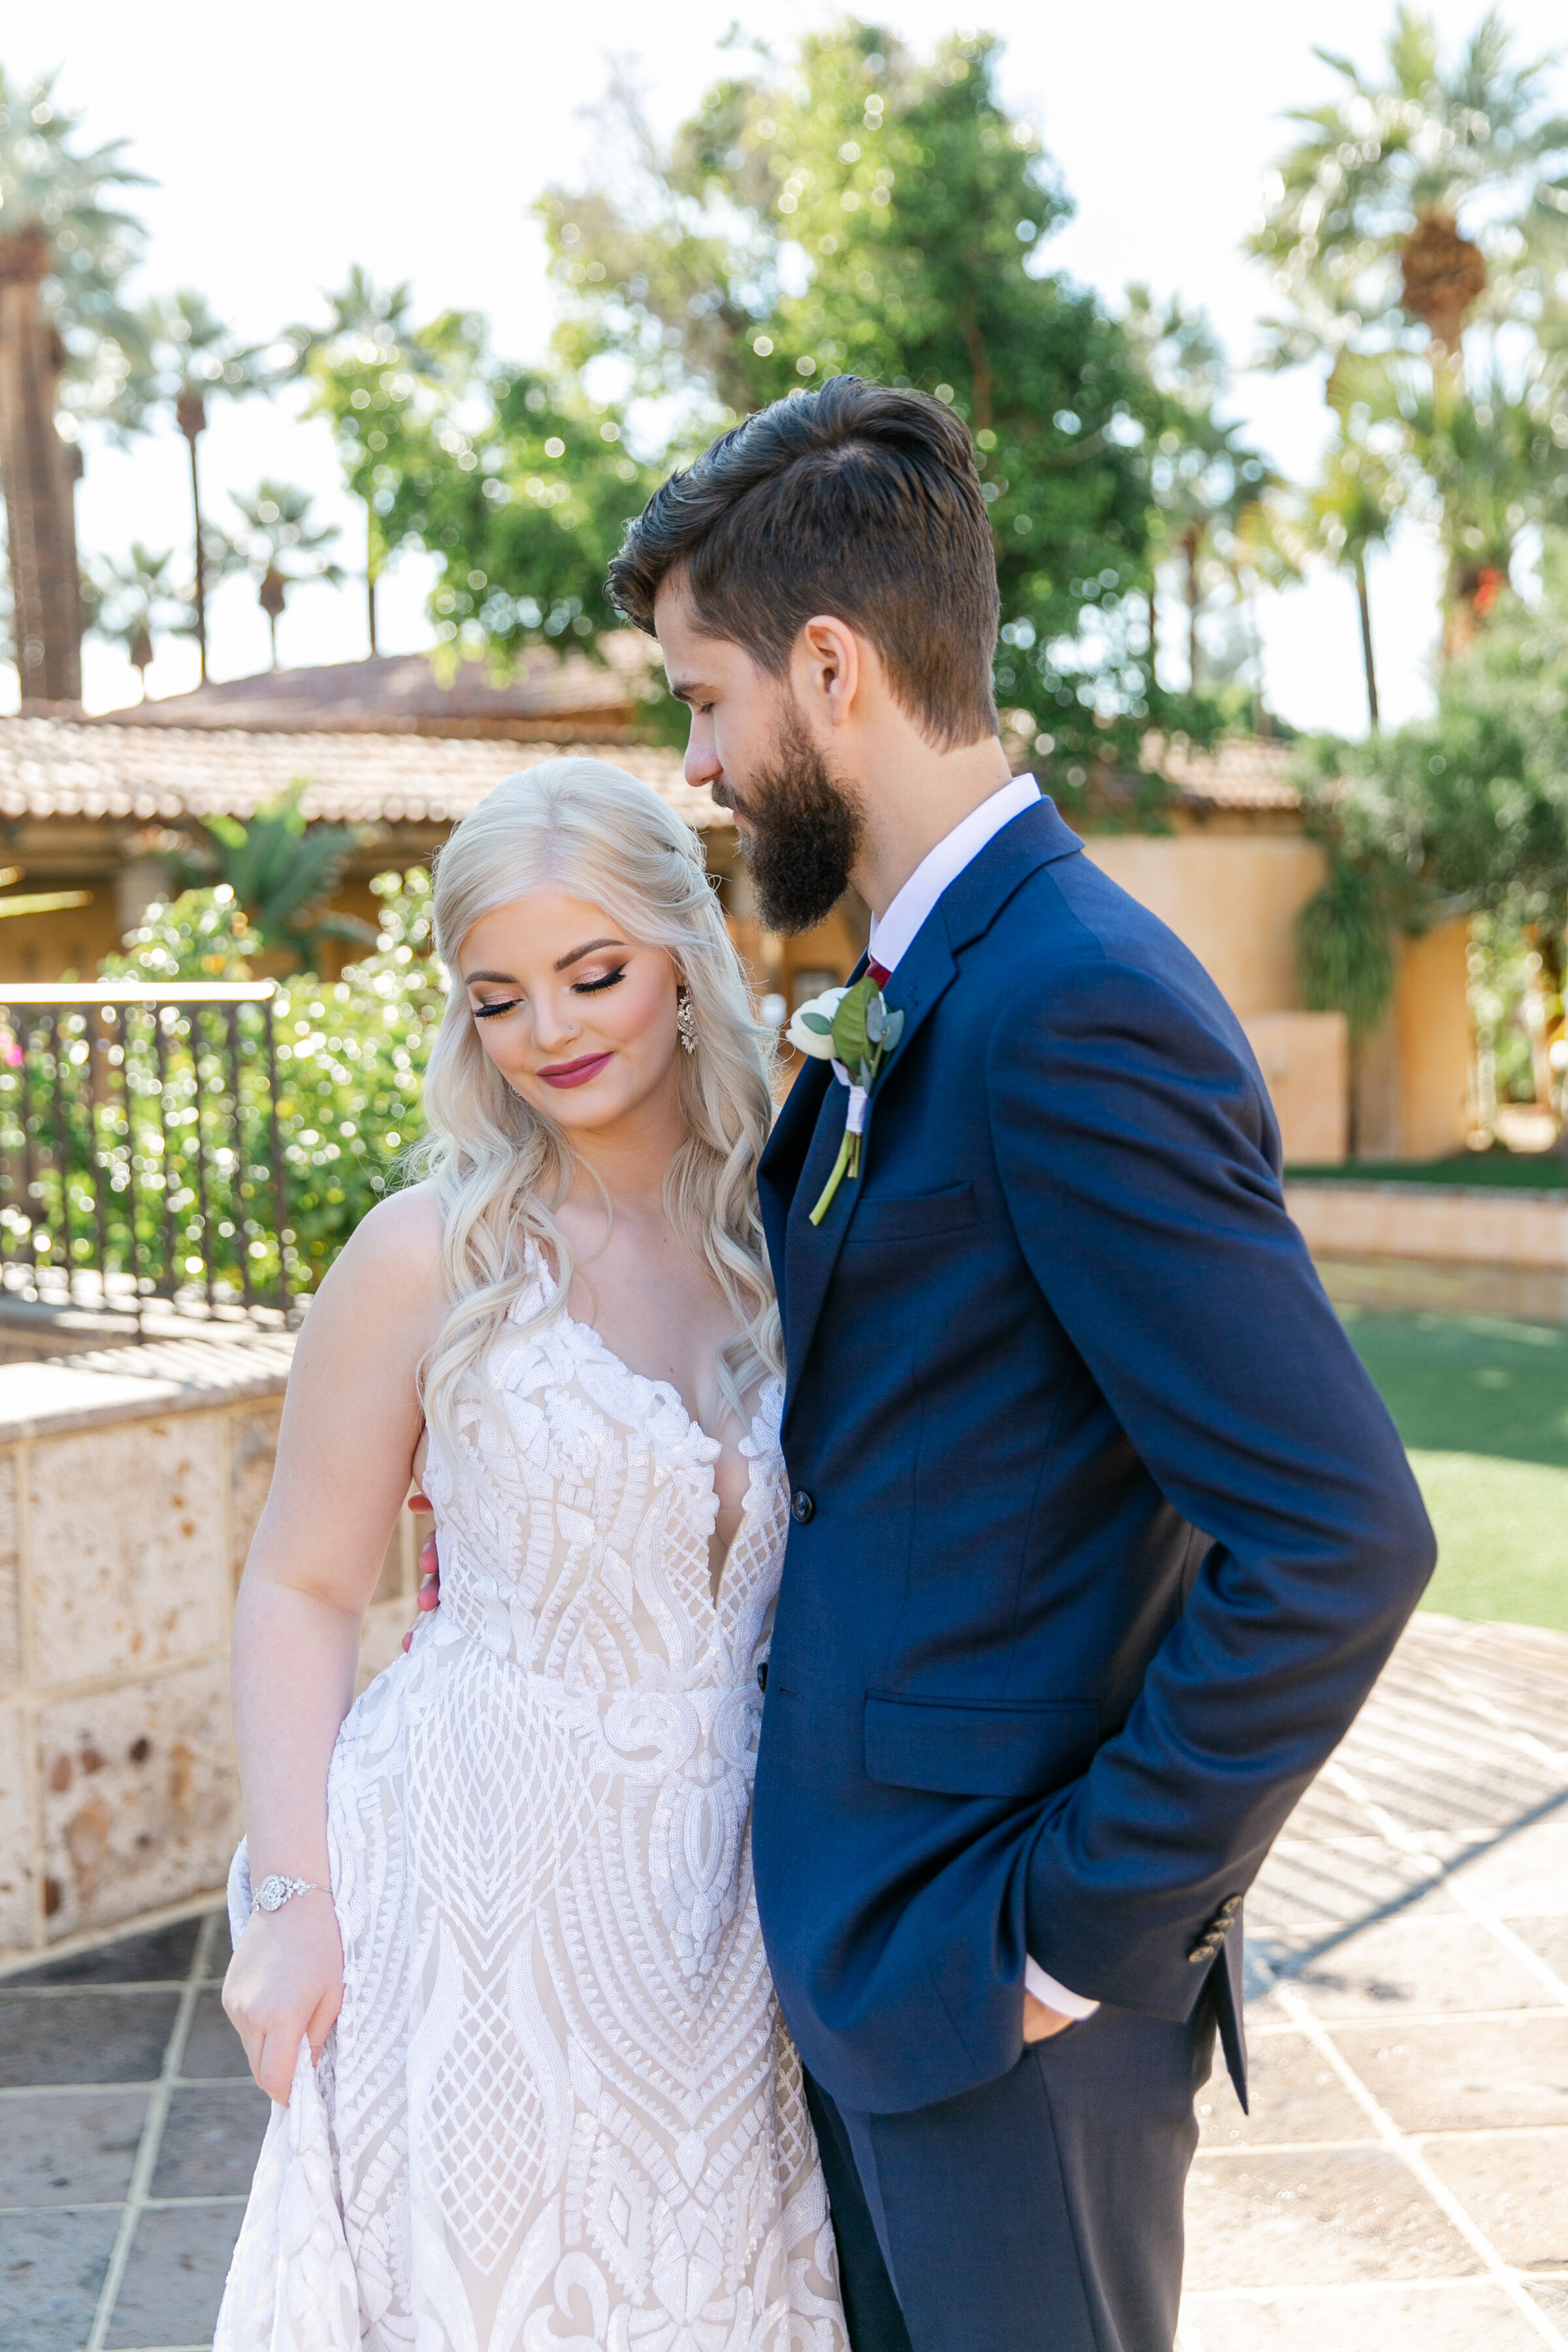 Karlie Colleen Photography - The Royal Palms Wedding - Some Like It Classic - Alex & Sam-126